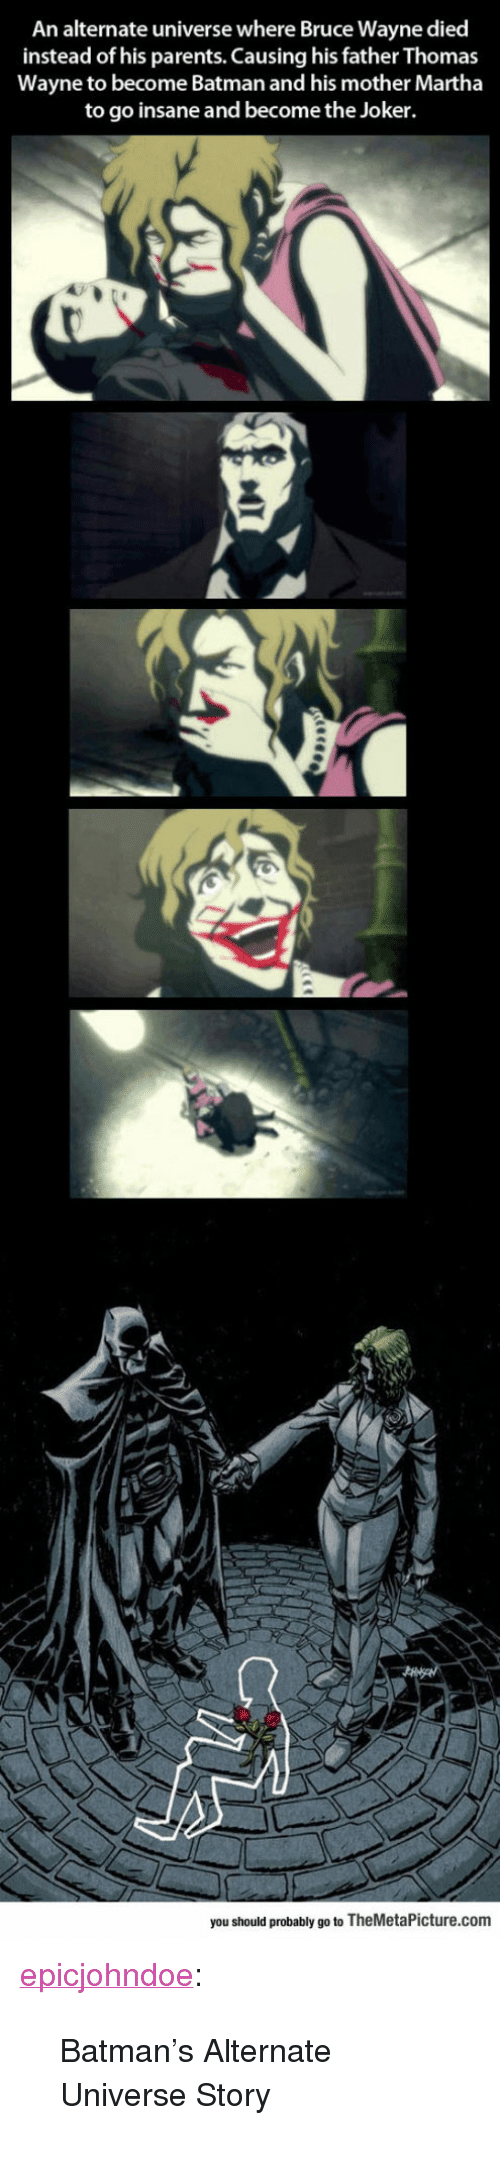 """thomas wayne: An alternate universe where Bruce Wayne died  instead of his parents. Causing his father Thomas  Wayne to become Batman and his mother Martha  to go insane and become the Joker.  you should probably go to TheMetaPicture.com <p><a href=""""https://epicjohndoe.tumblr.com/post/170226716930/batmans-alternate-universe-story"""" class=""""tumblr_blog"""">epicjohndoe</a>:</p>  <blockquote><p>Batman's Alternate Universe Story</p></blockquote>"""